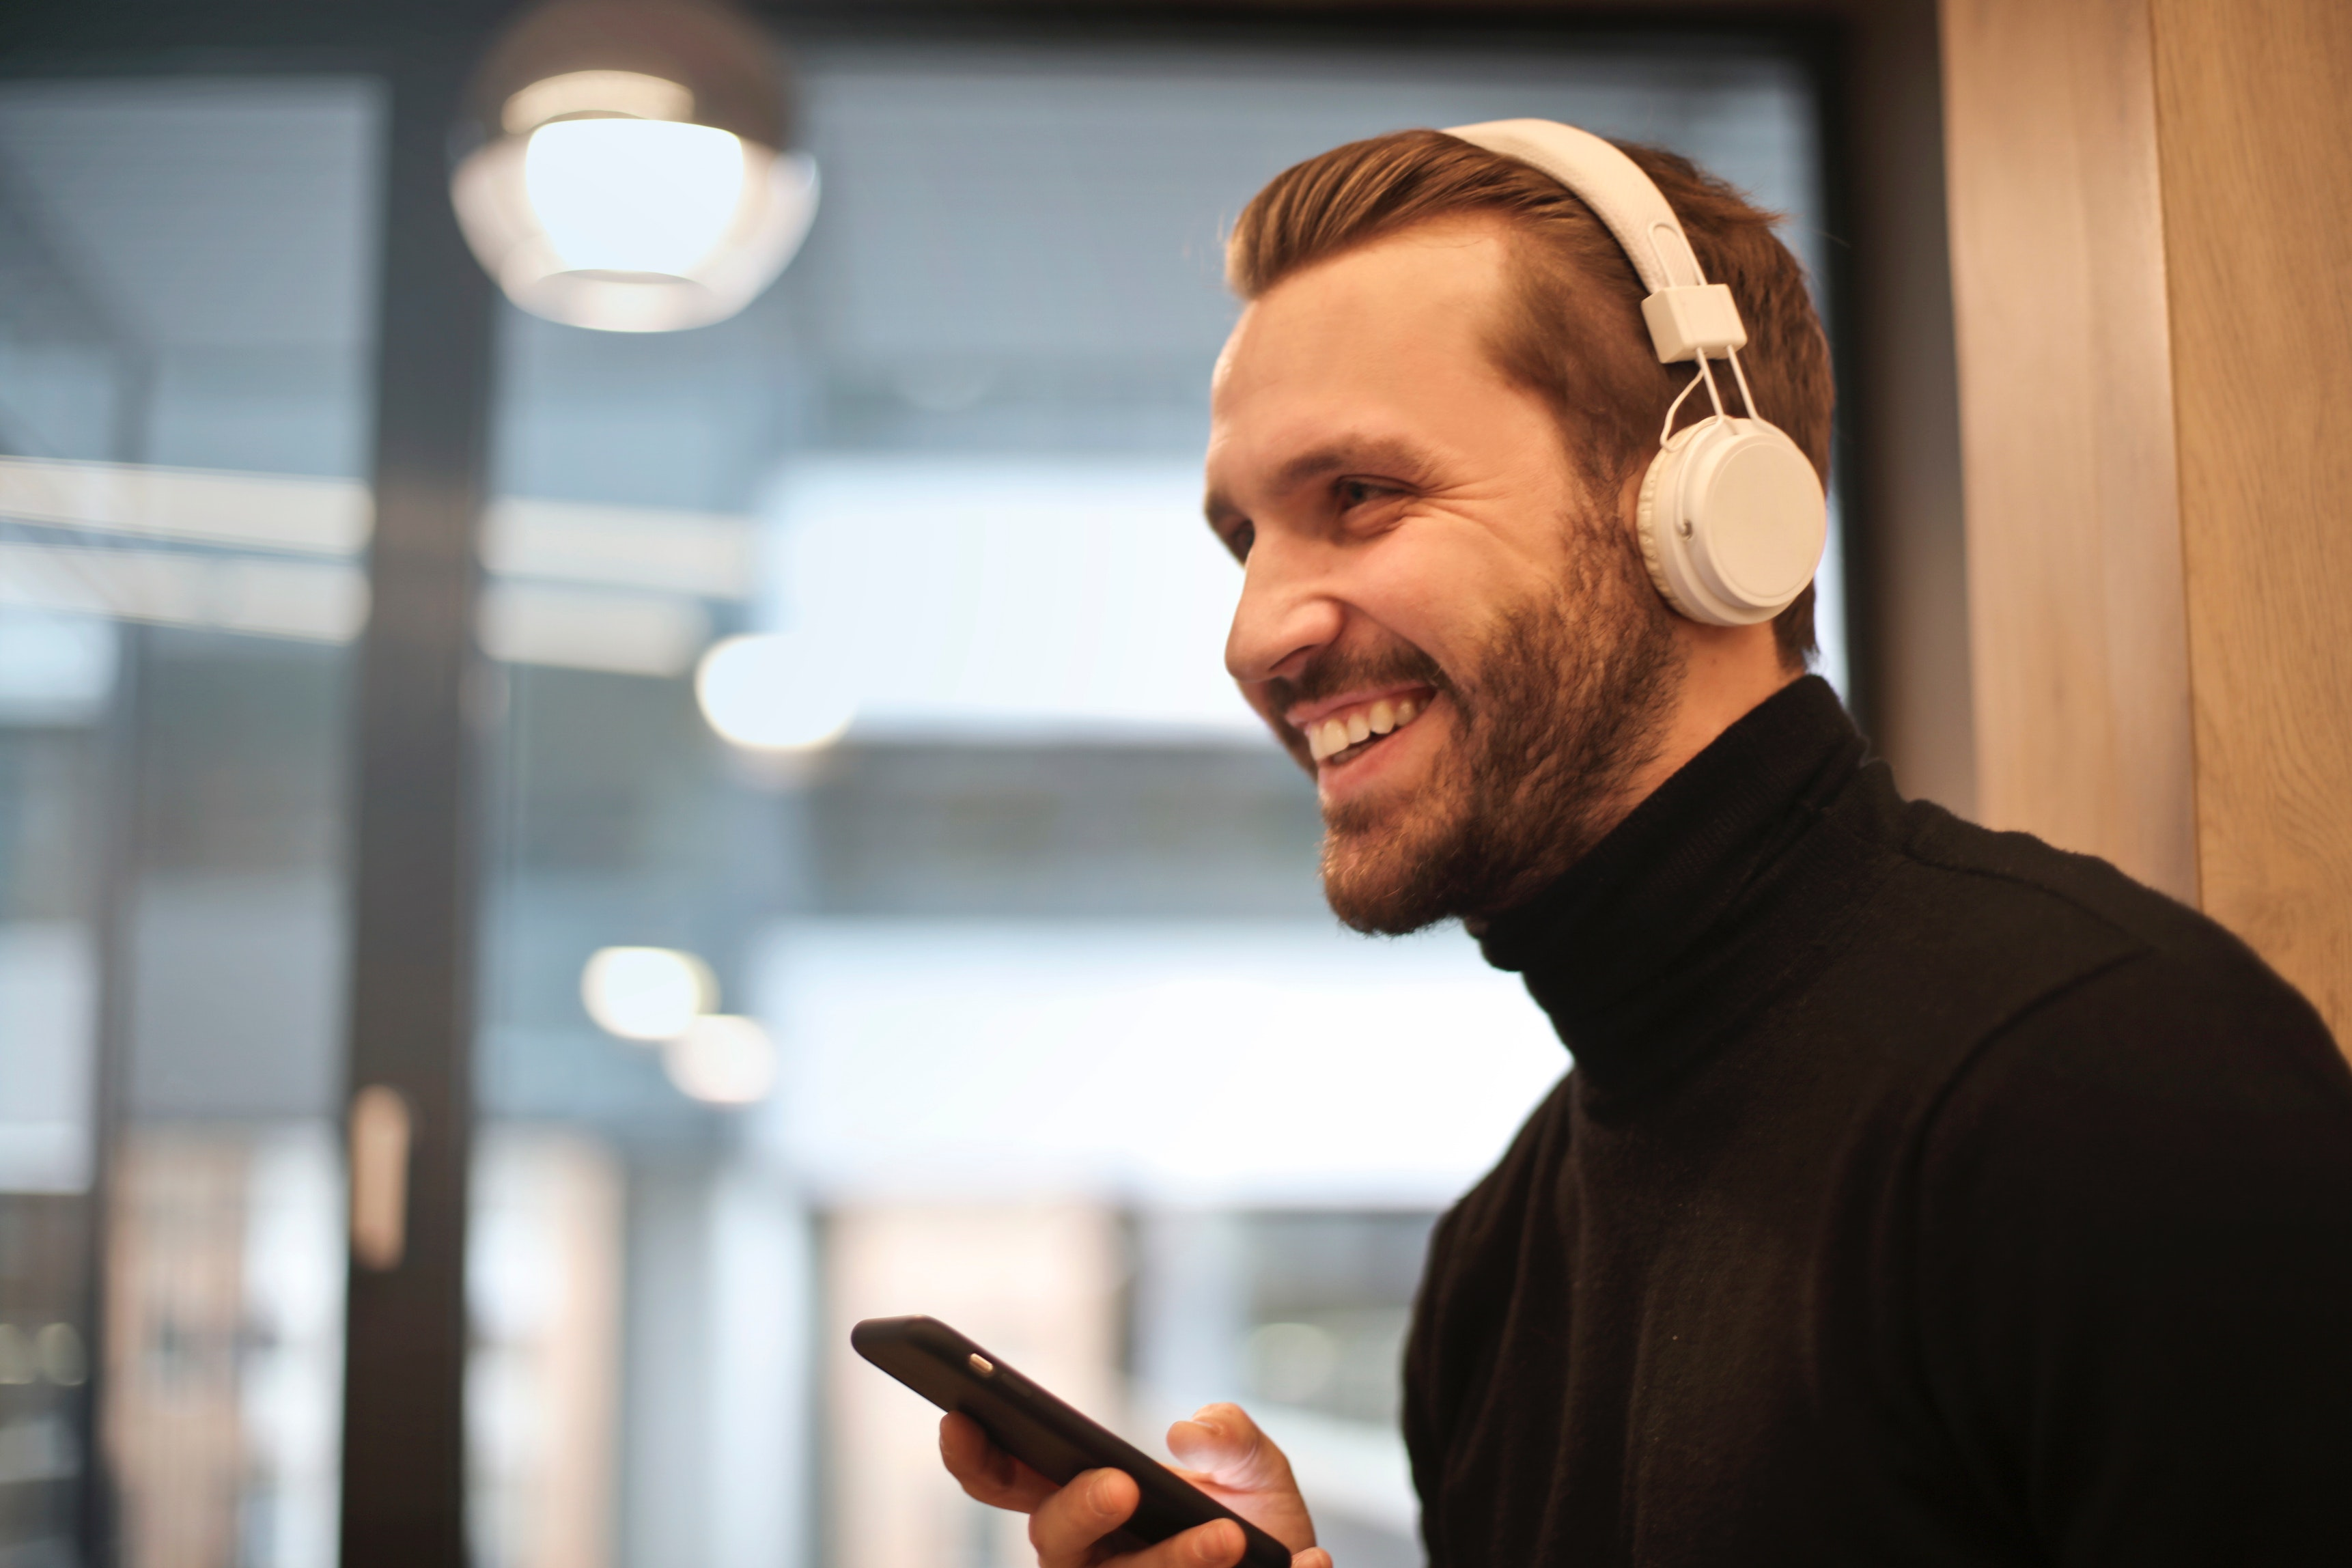 Man Wearing White Headphones Listening to Music, Portable, Phone, Person, Music, HQ Photo